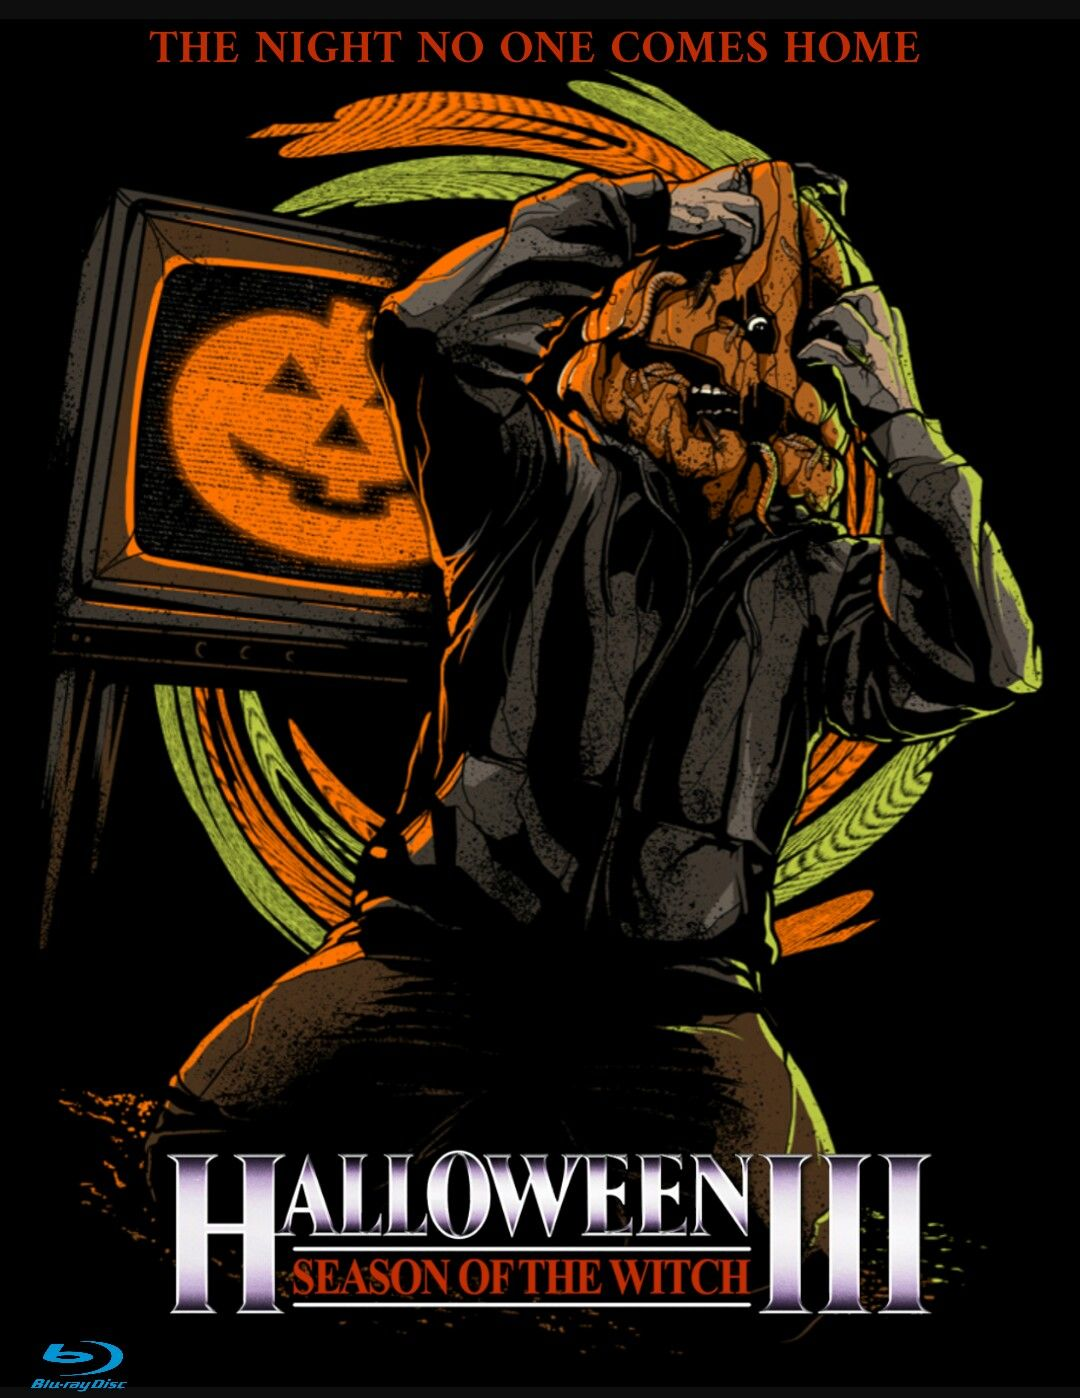 halloween 3 season of the witch horror movie poster | movie posters